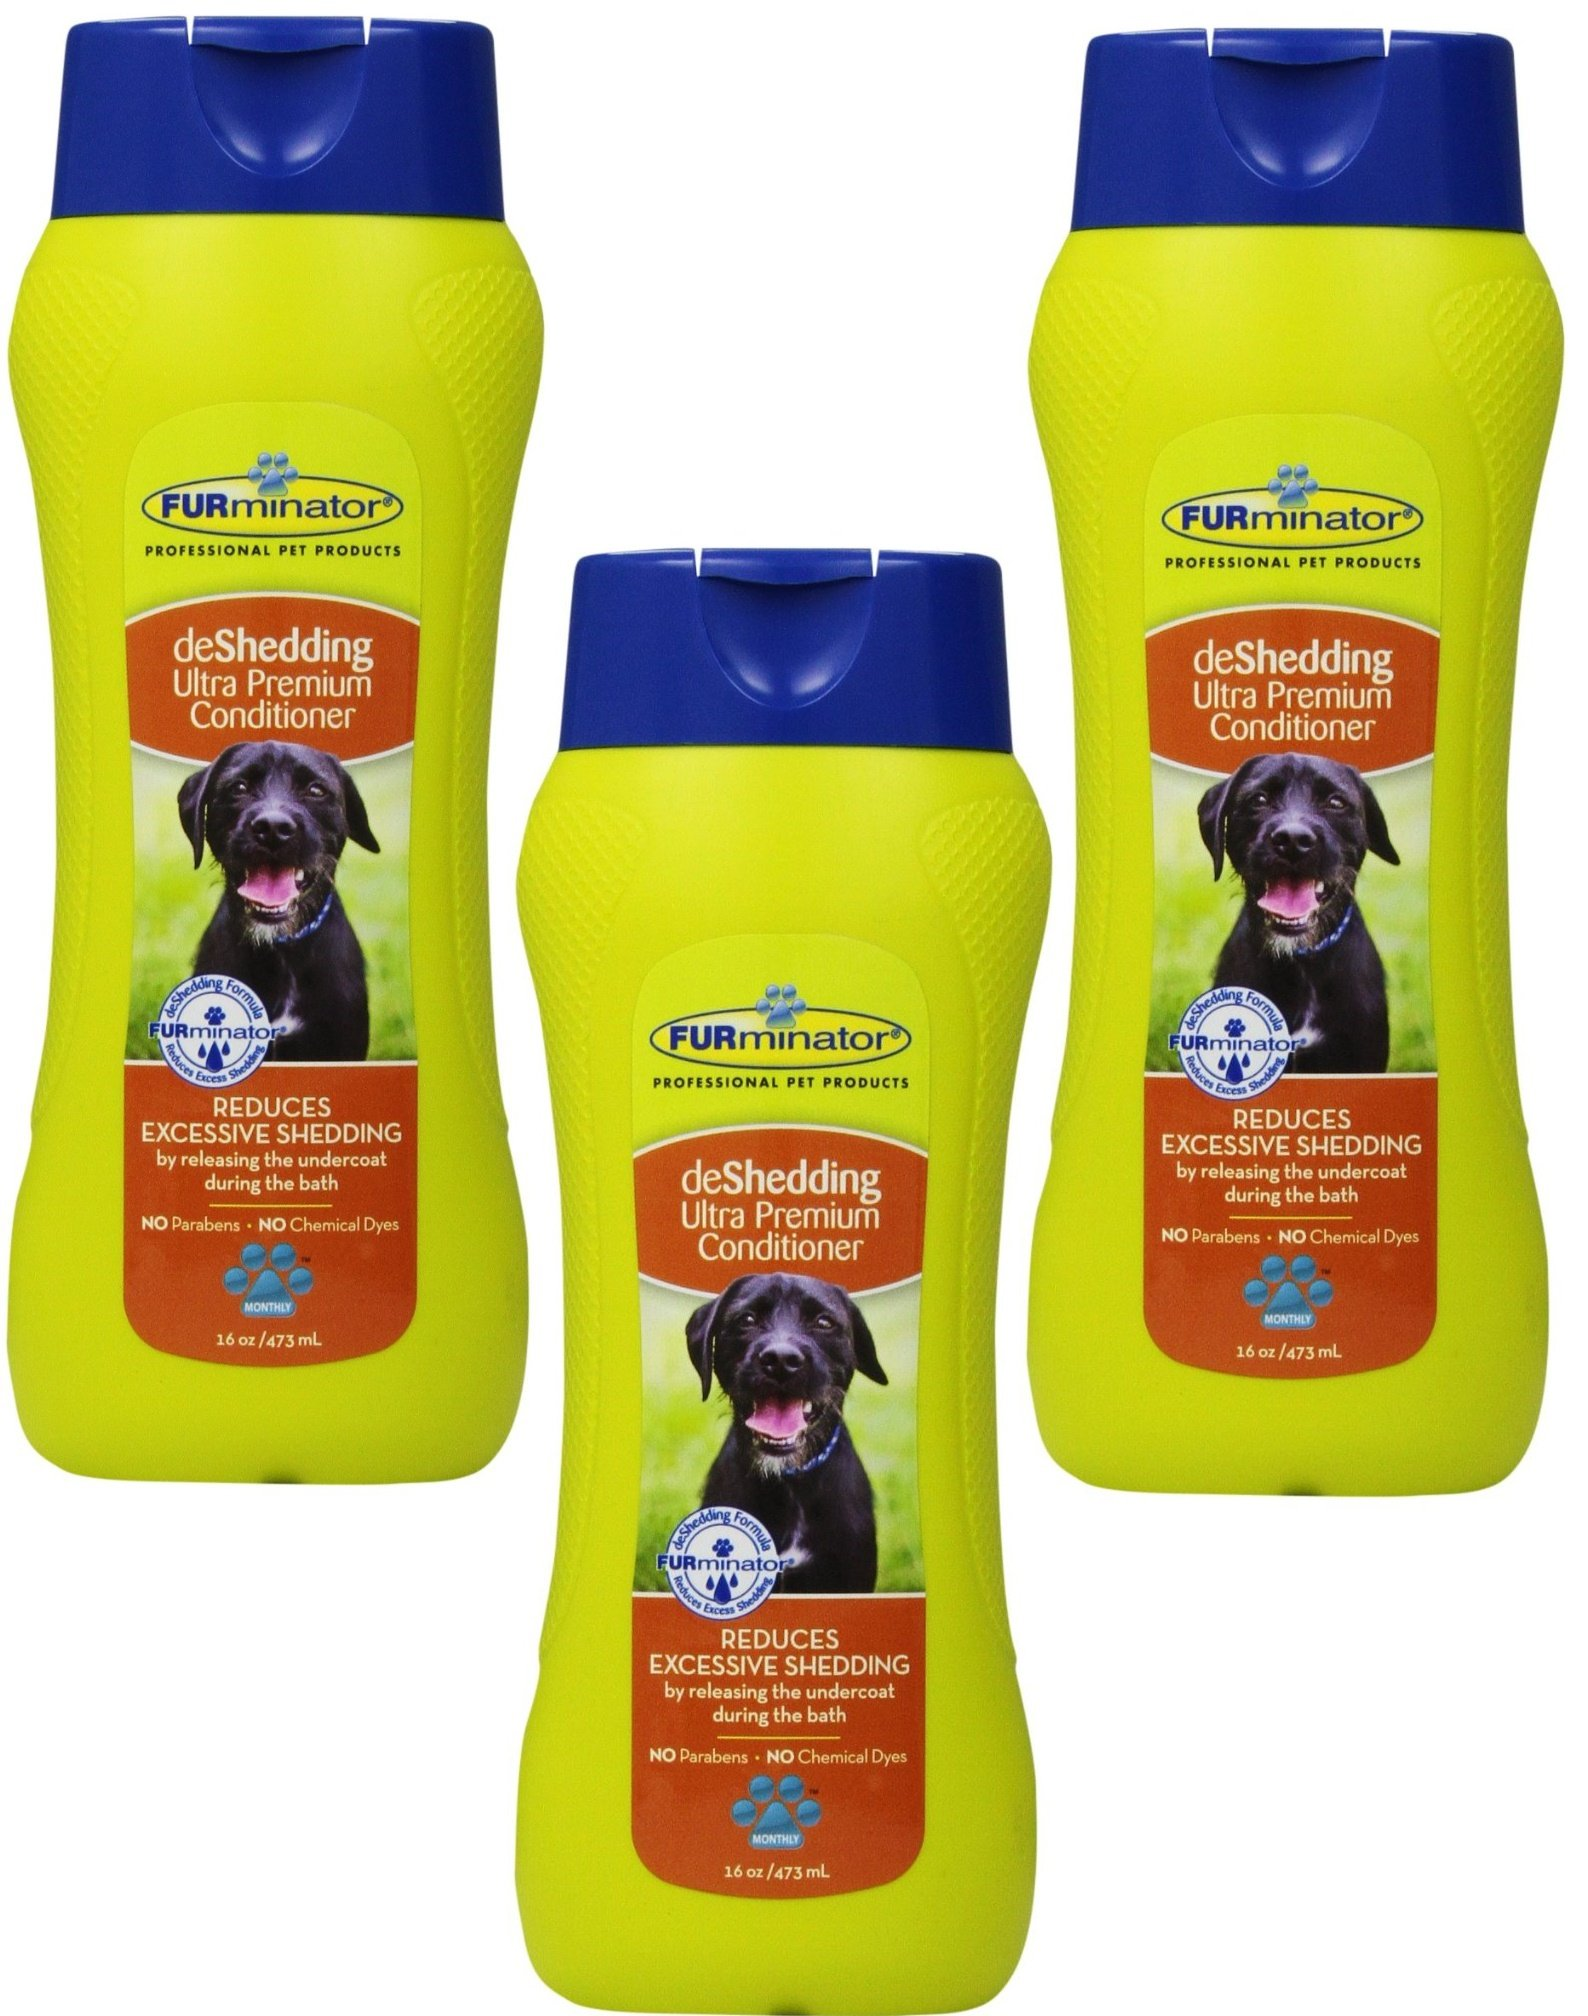 (3 Pack) FURminator deShedding Ultra Premium Conditioner, 16-Ounce Bottles